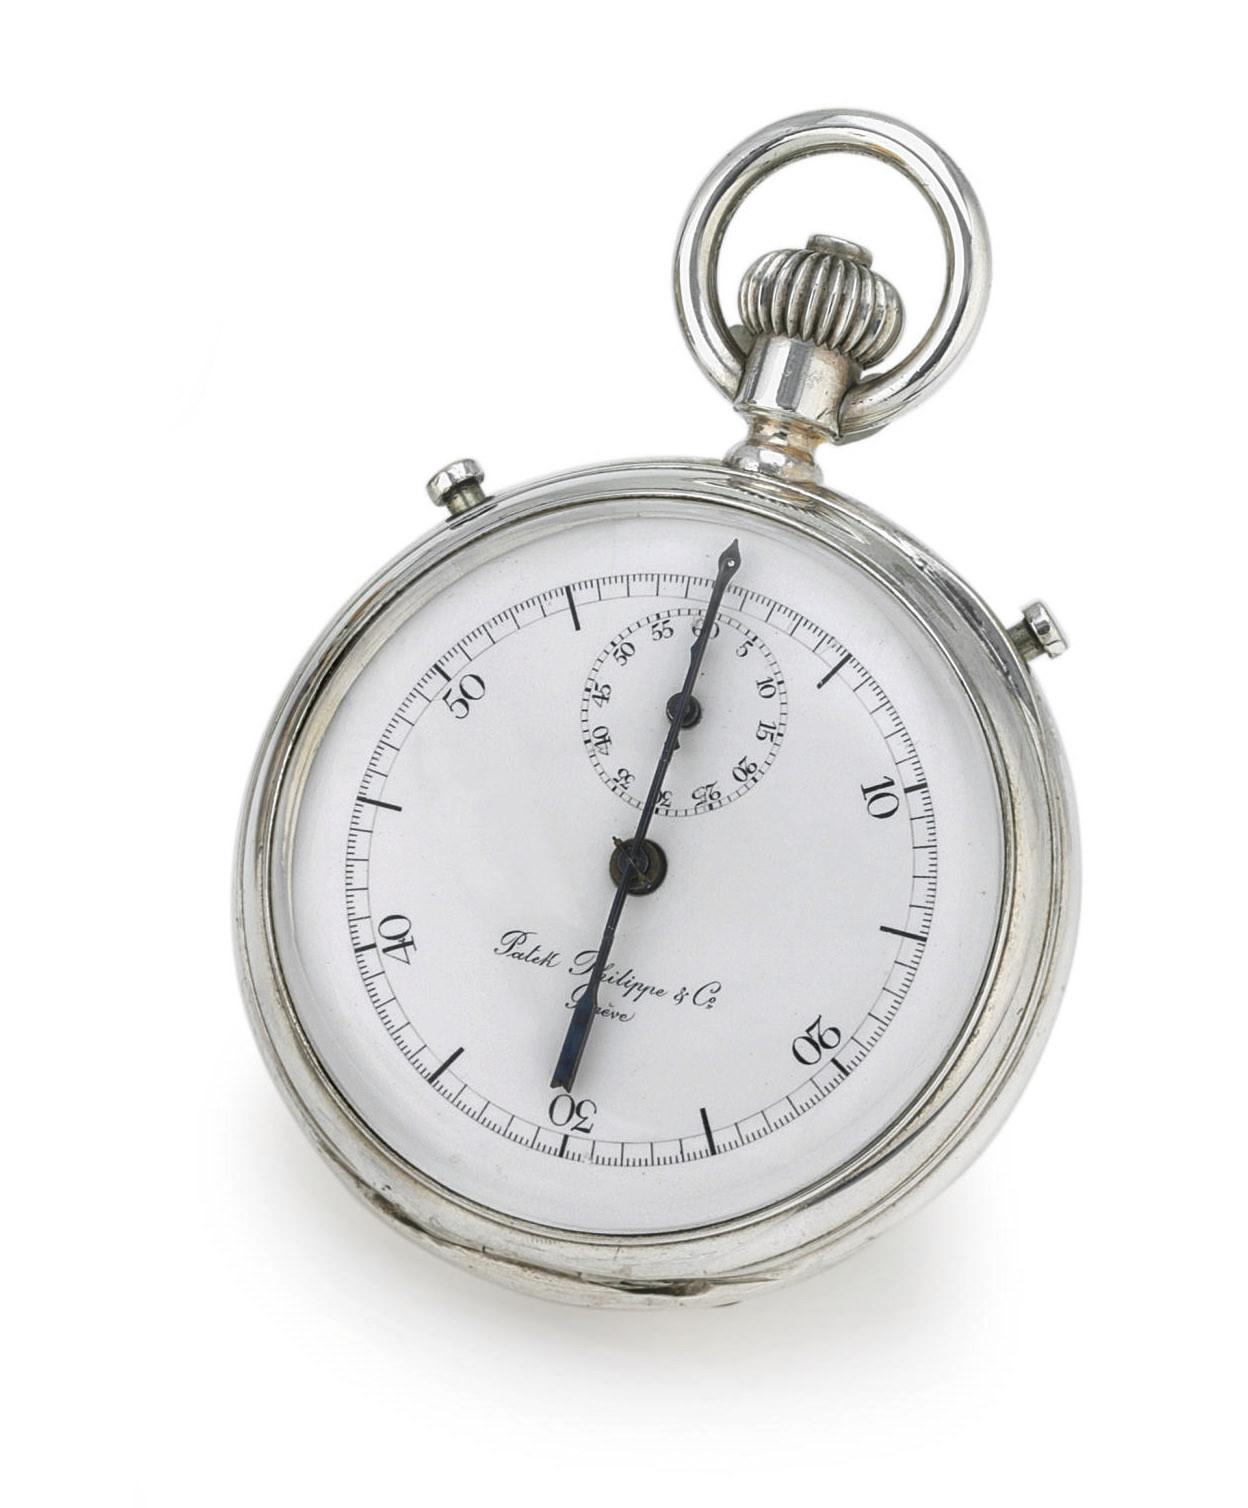 PATEK PHILIPPE. A FINE SILVER OPENFACE INKING CHRONOGRAPH